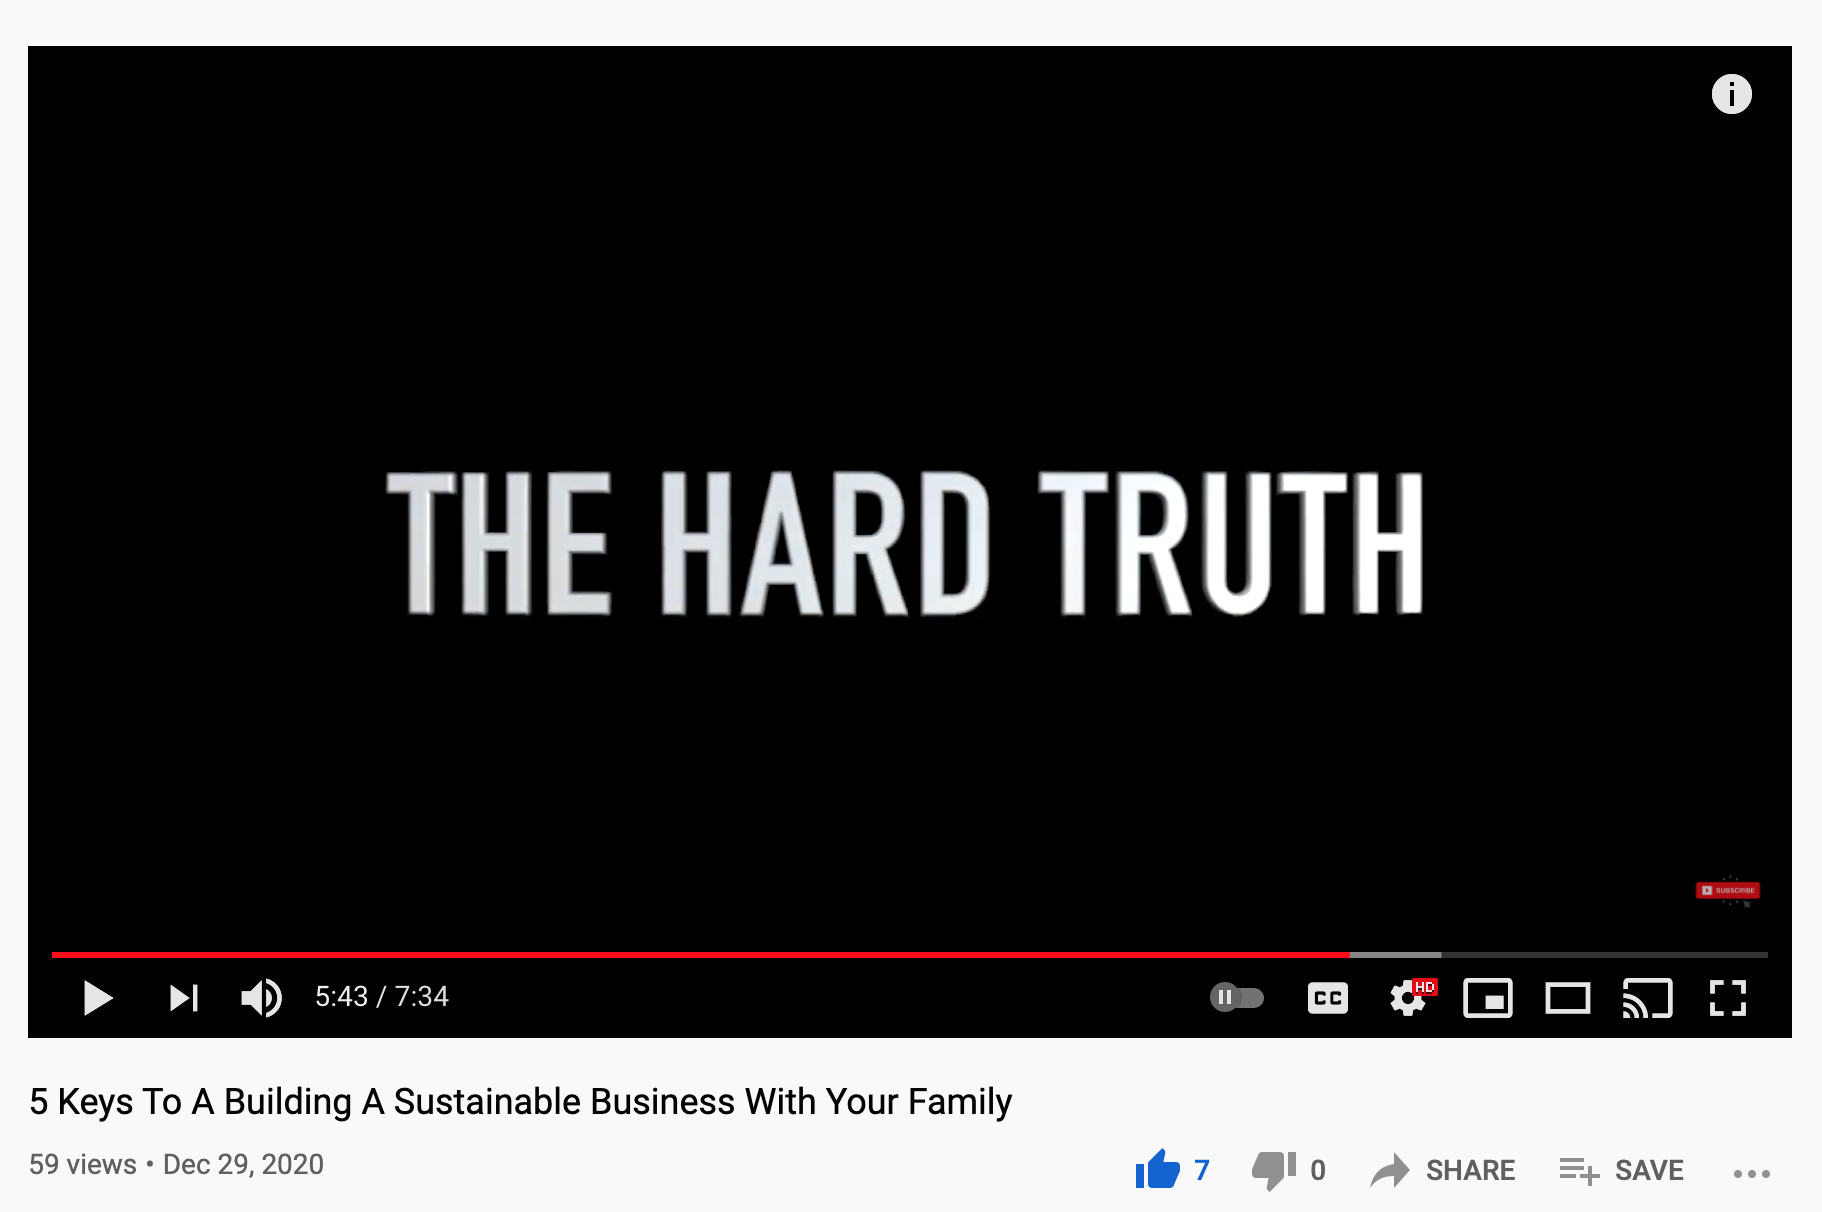 Building A Sustainable Business - The Hard Truth